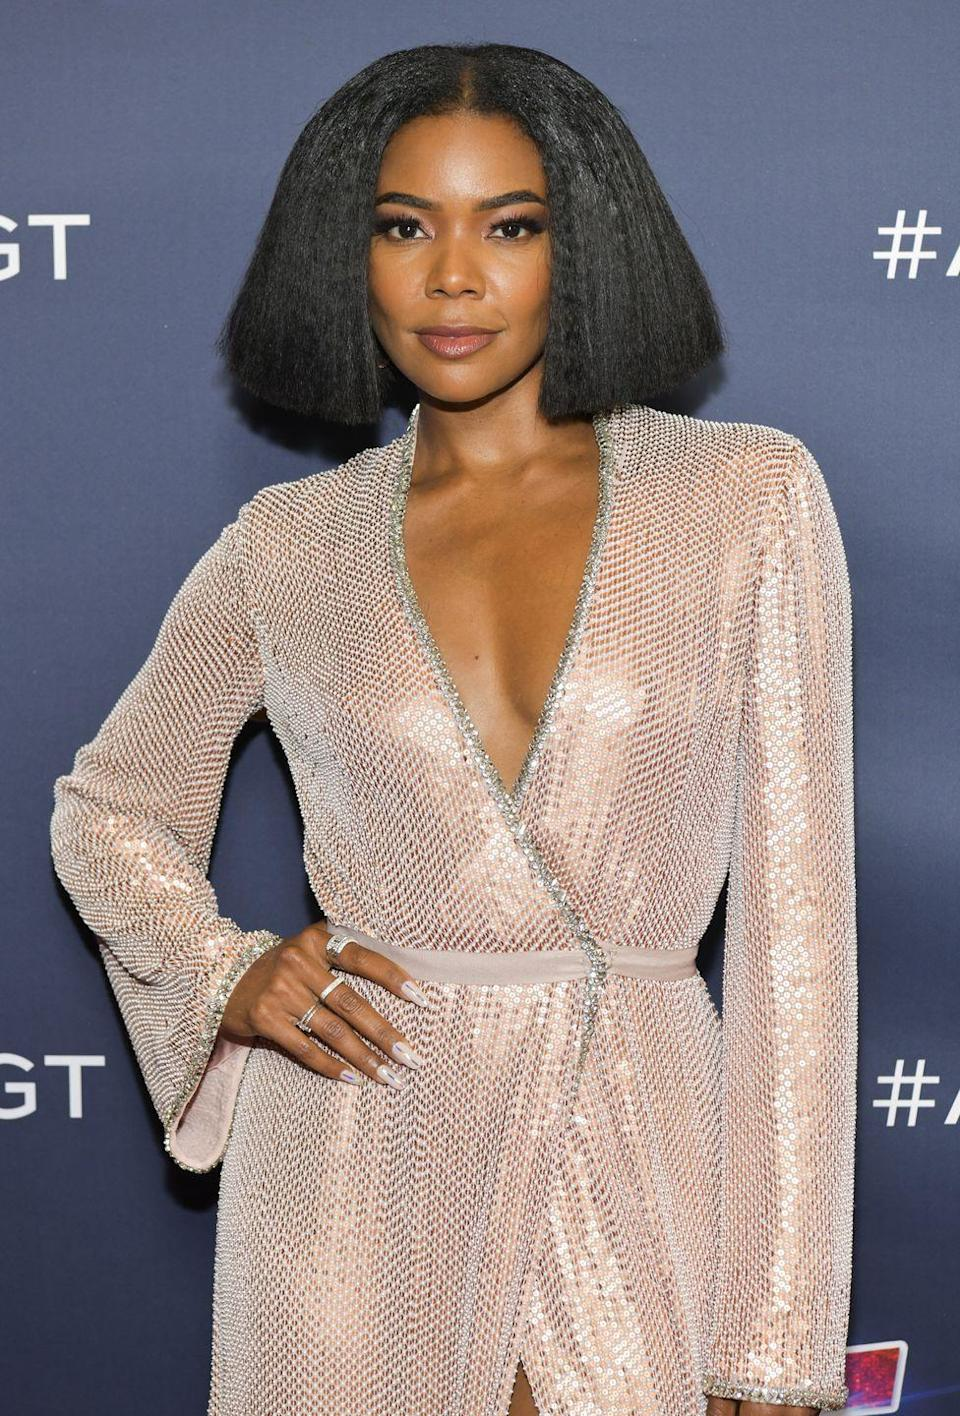 <p>Channel your inner Cleopatra and try out a chin-length blunt bob next time you need a change. The style leaves room to play—wear it down or pulled back with pins, curly or straight. We love the look on Gabrielle Union.</p>